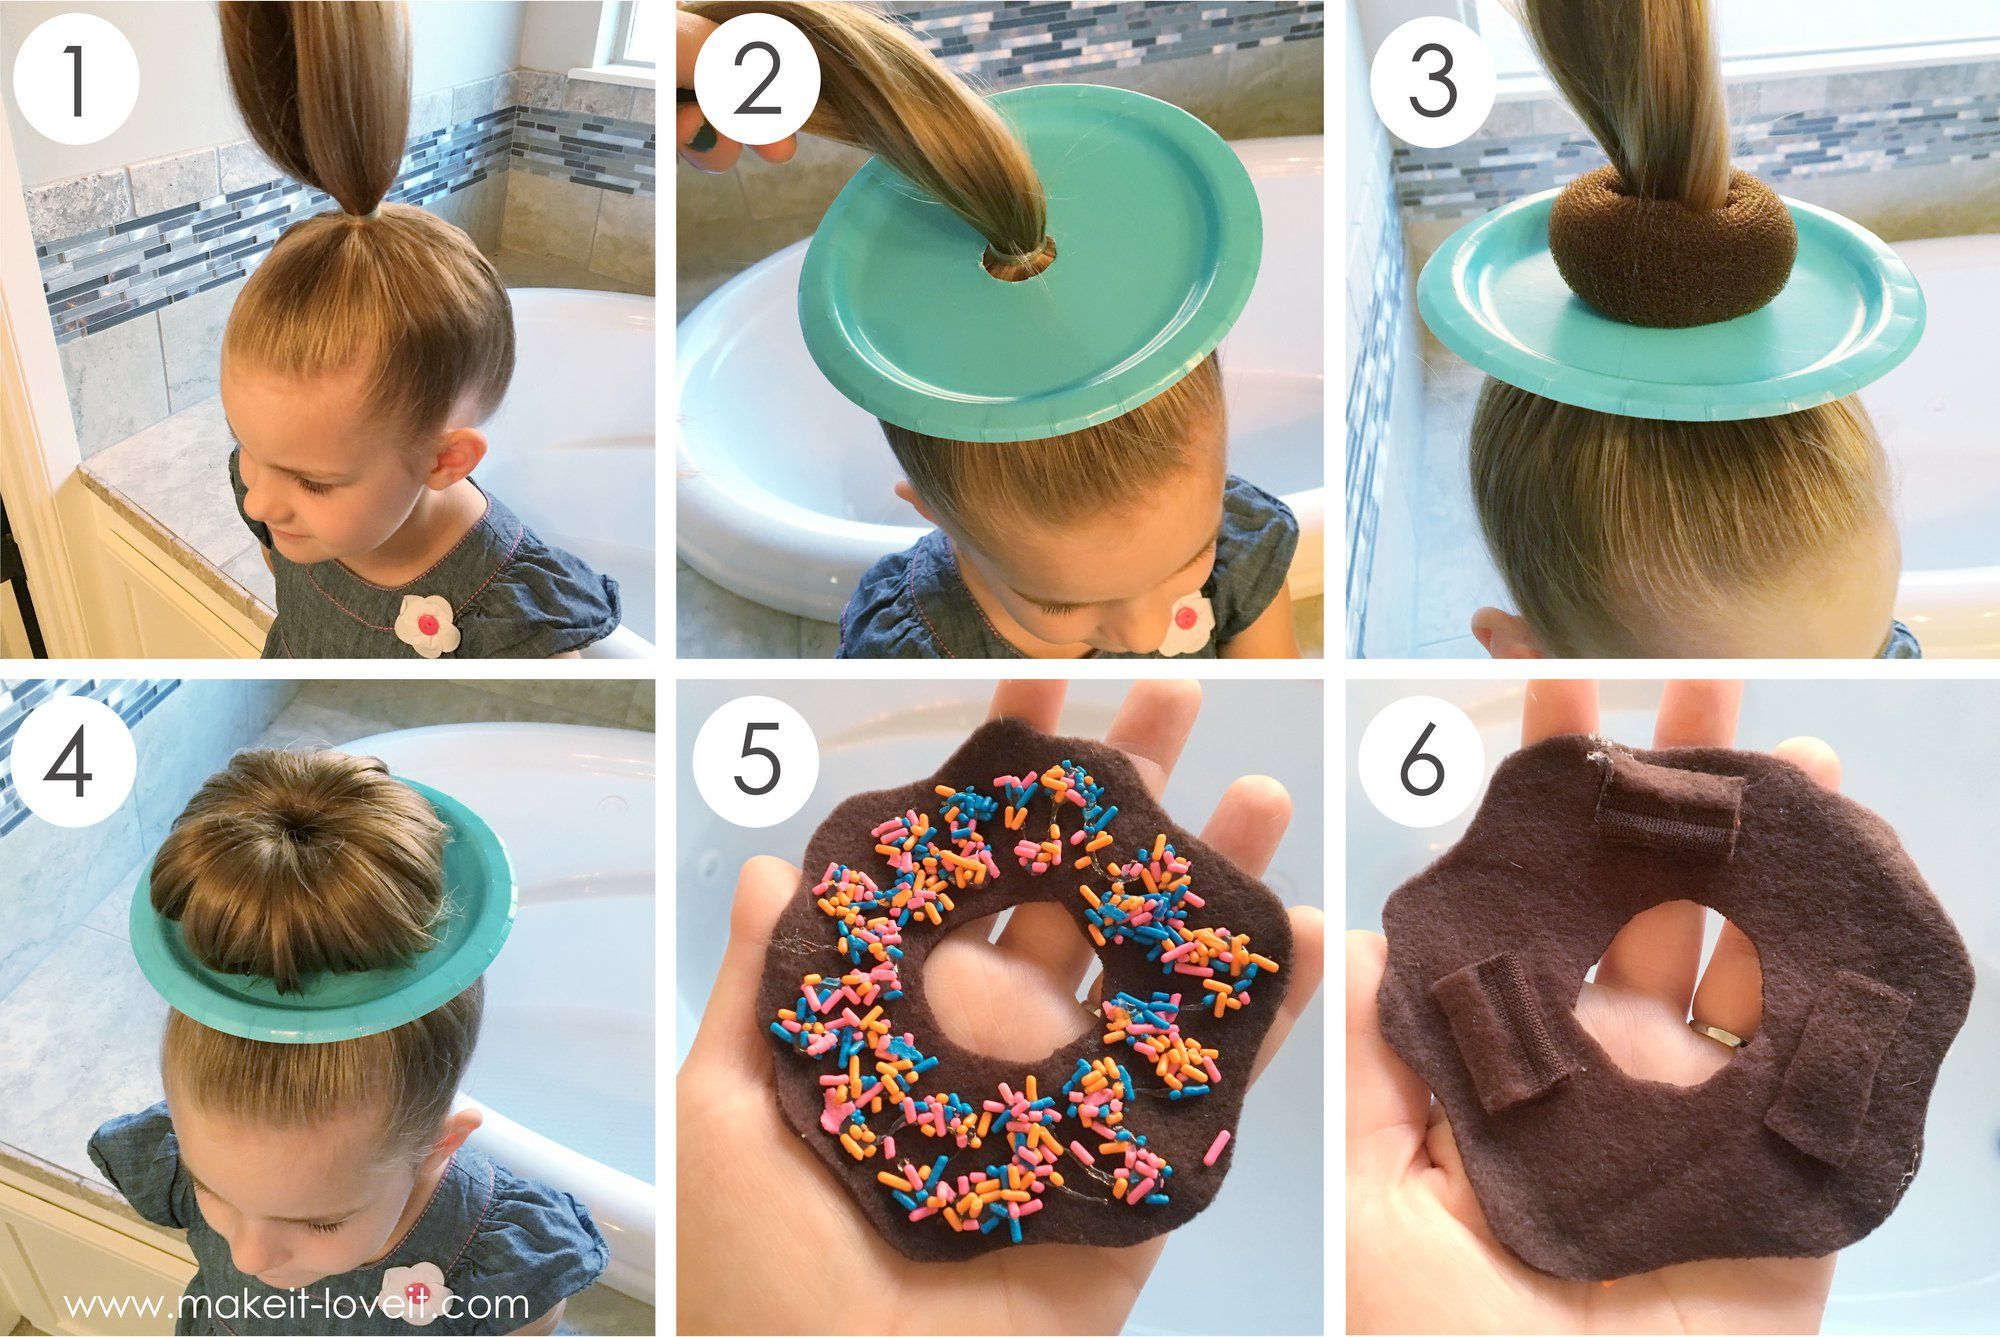 best 25+ wacky hairstyles ideas on pinterest | funny hairstyles